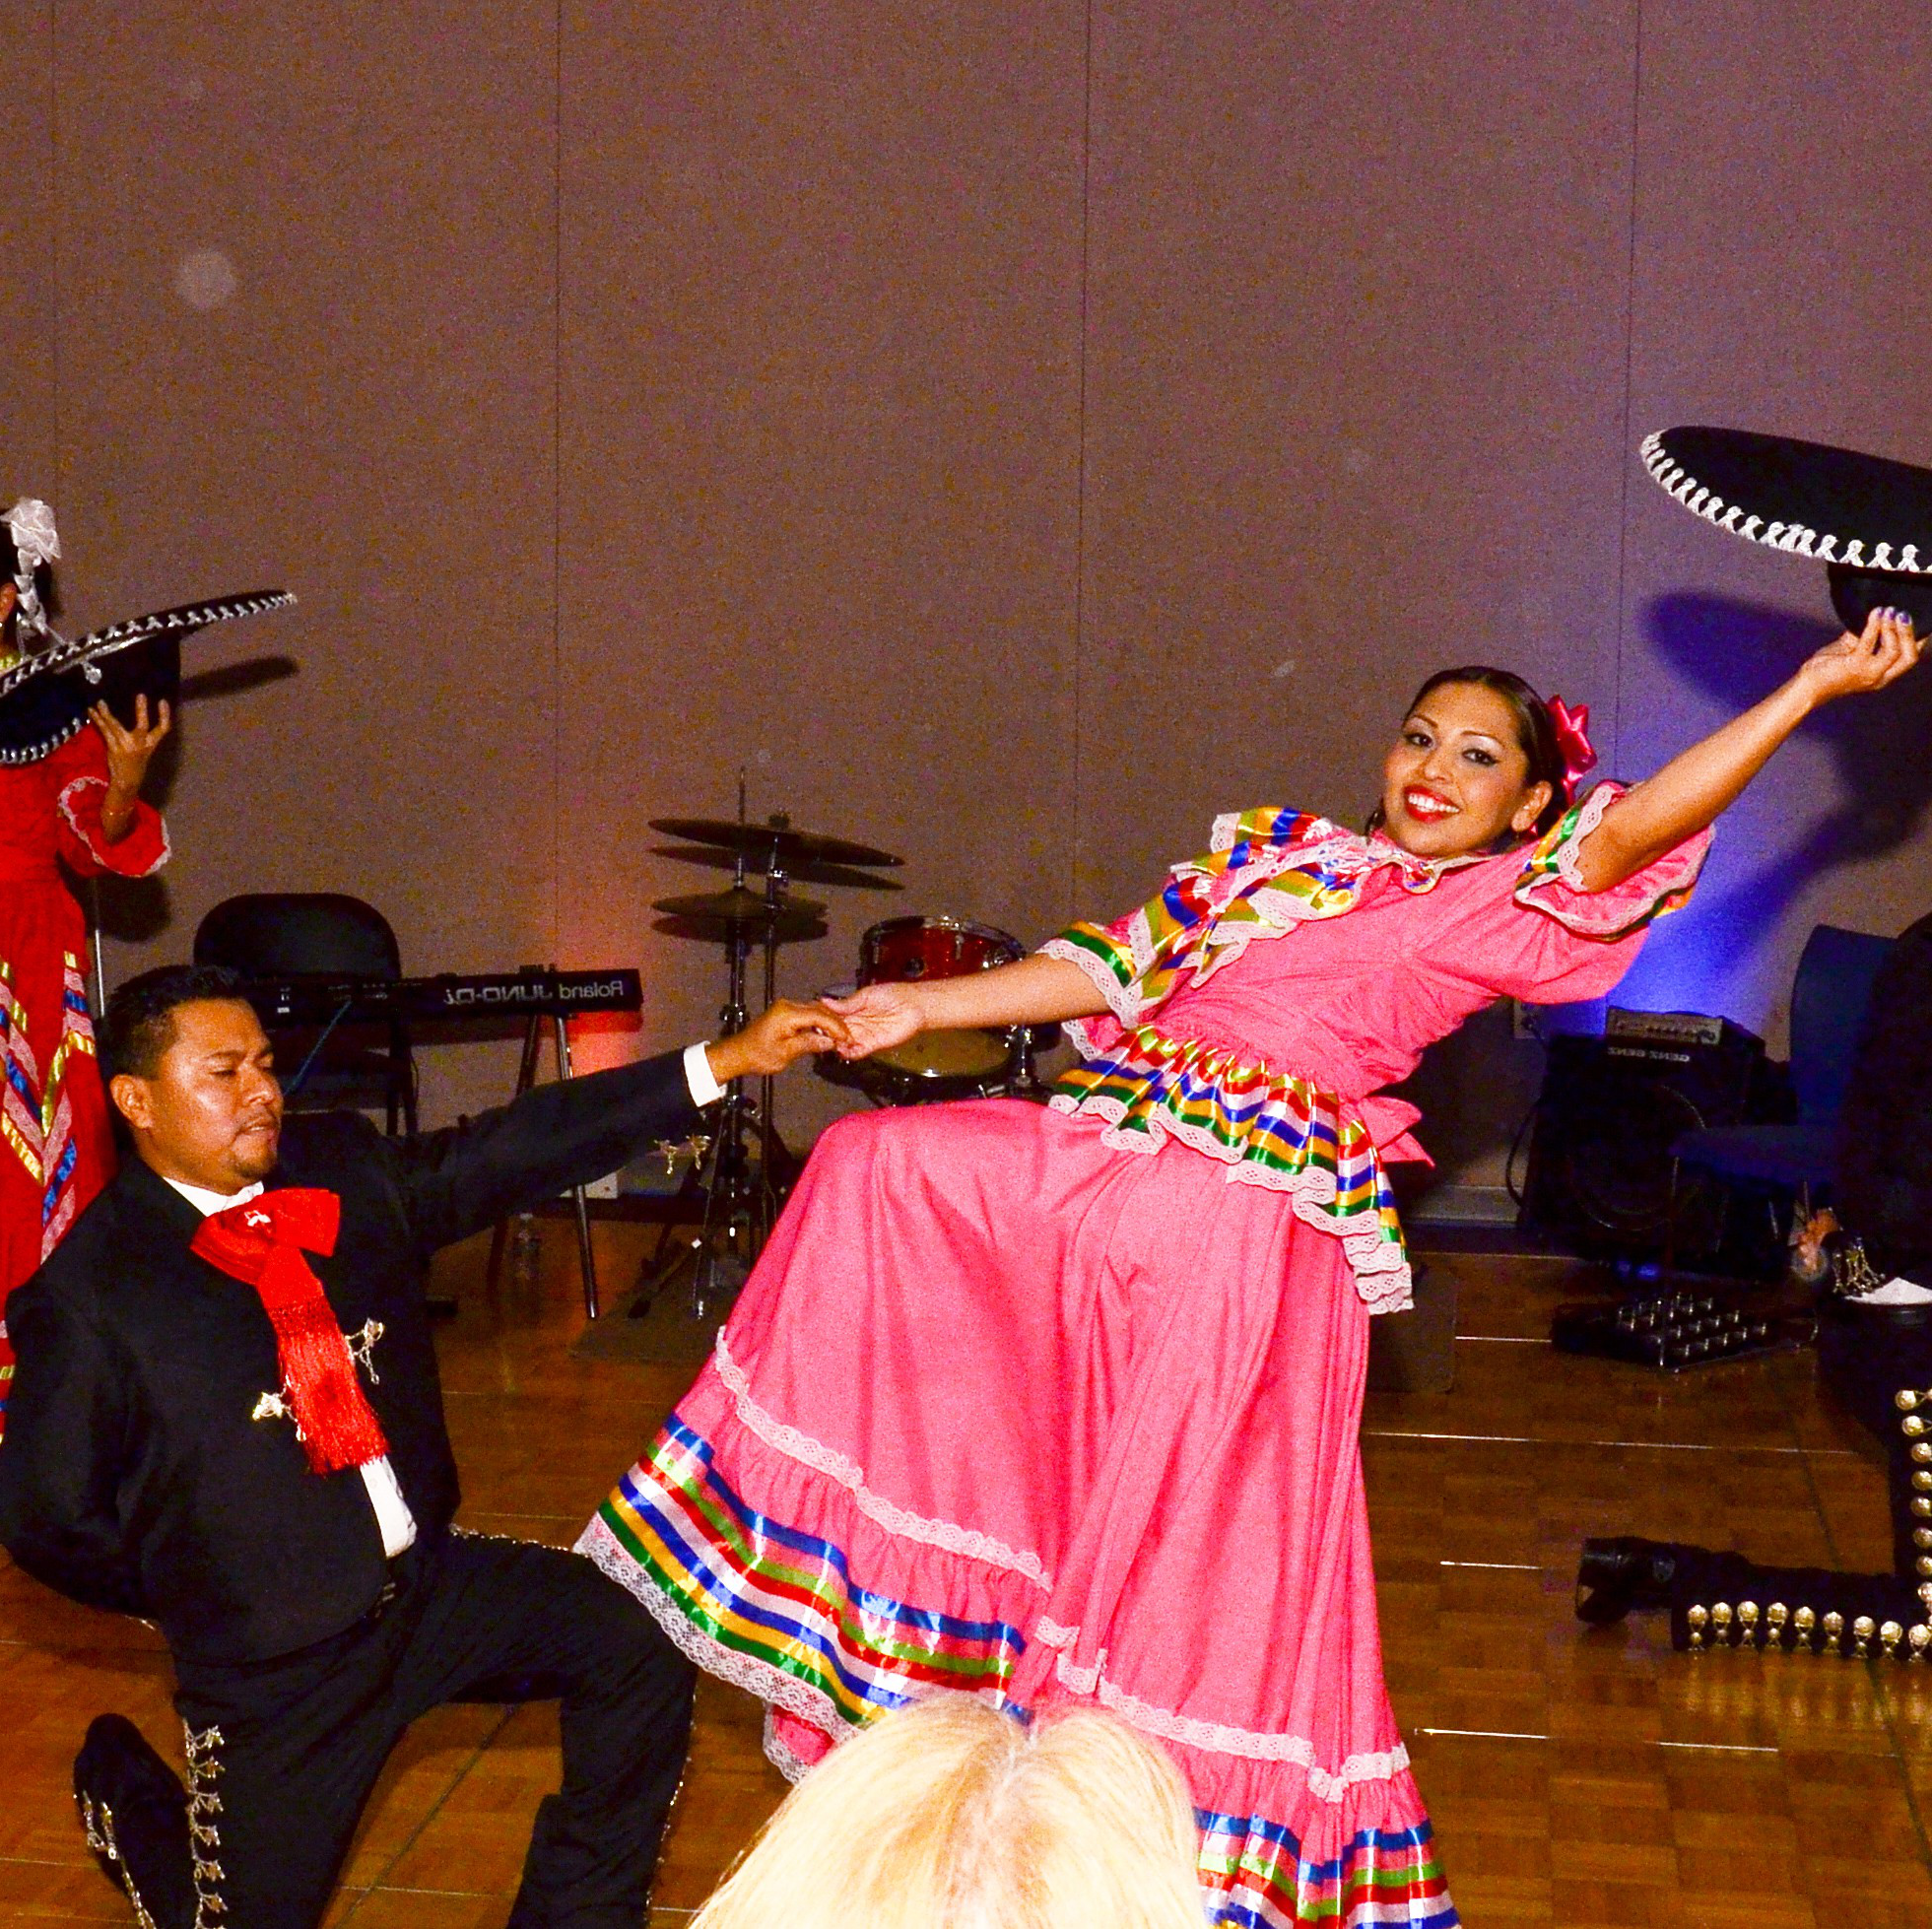 Traditional Mexican dancers performing